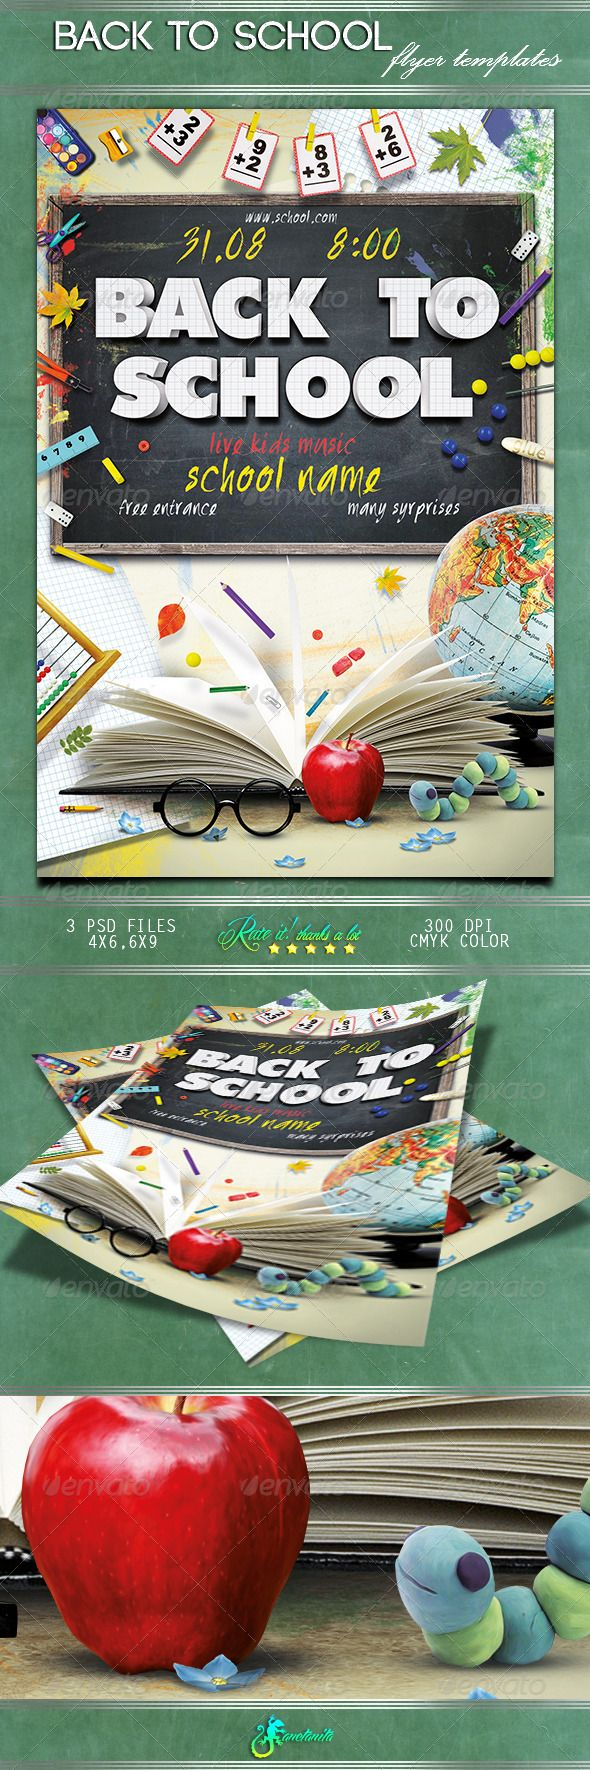 282 best images about logosposters on pinterest logos typography and flyer template for Back to school brochure